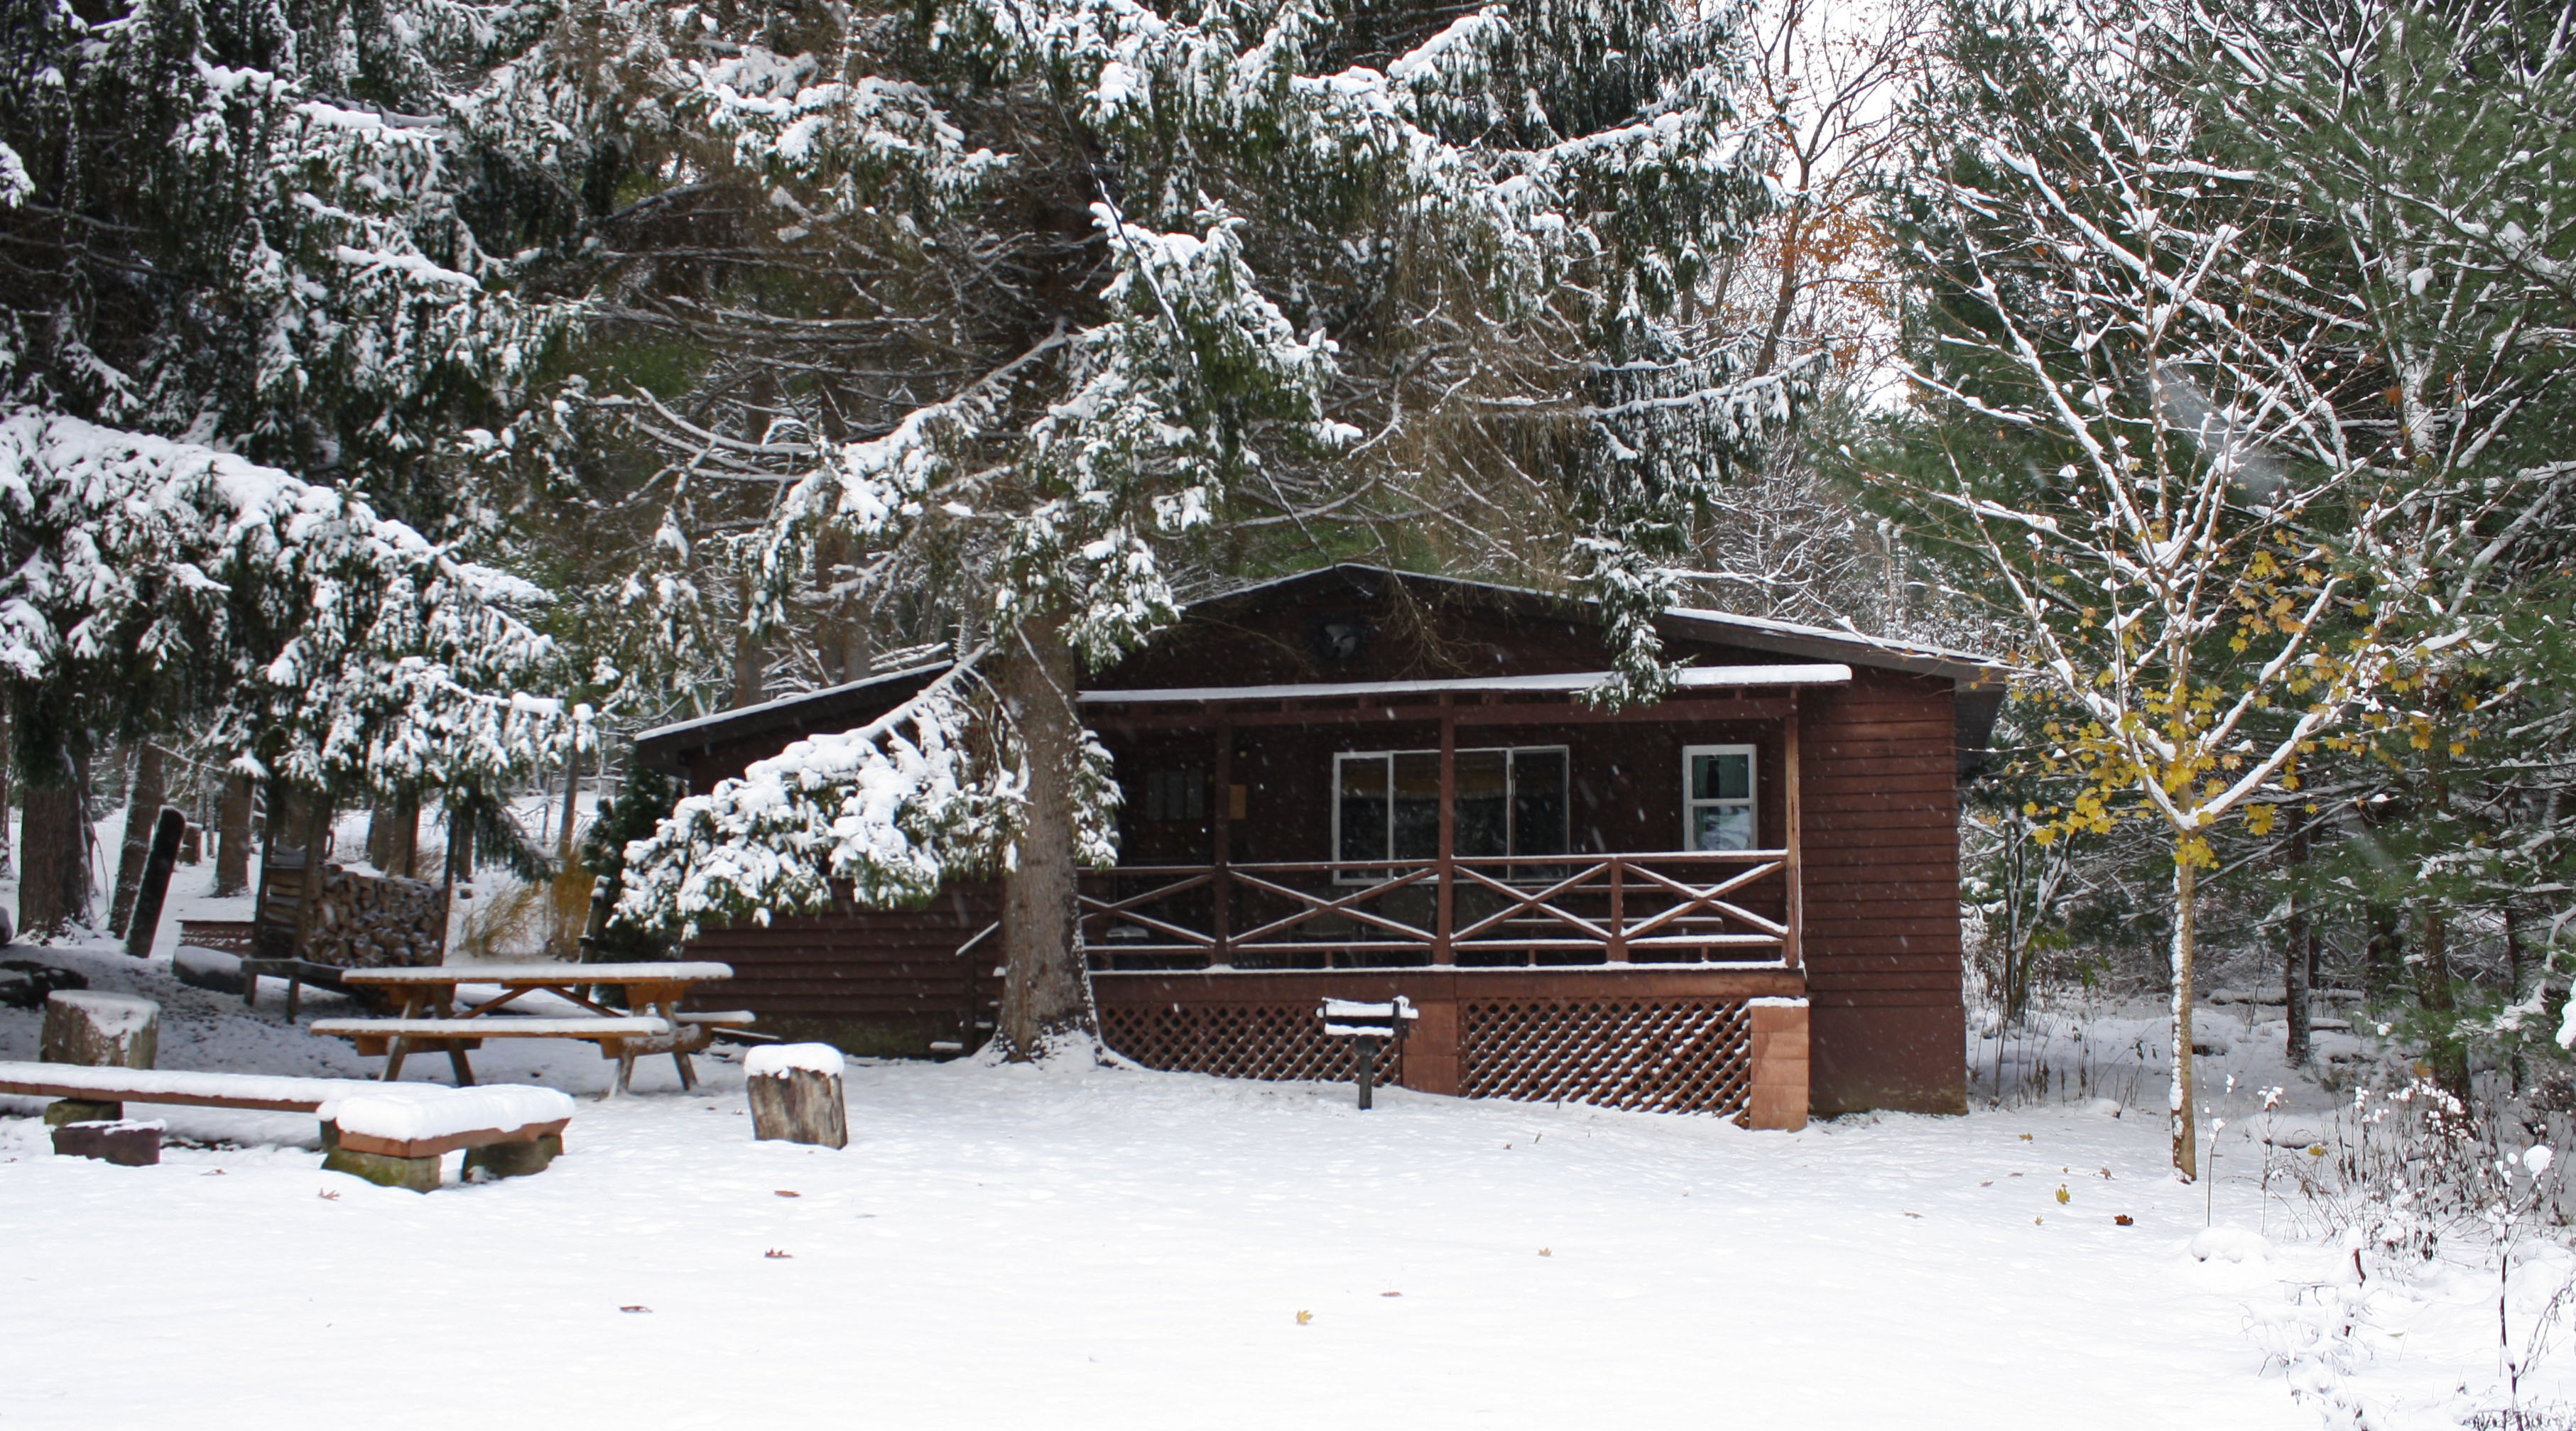 cabin lakeview winter rentals cabins bunk lopstick conn house first